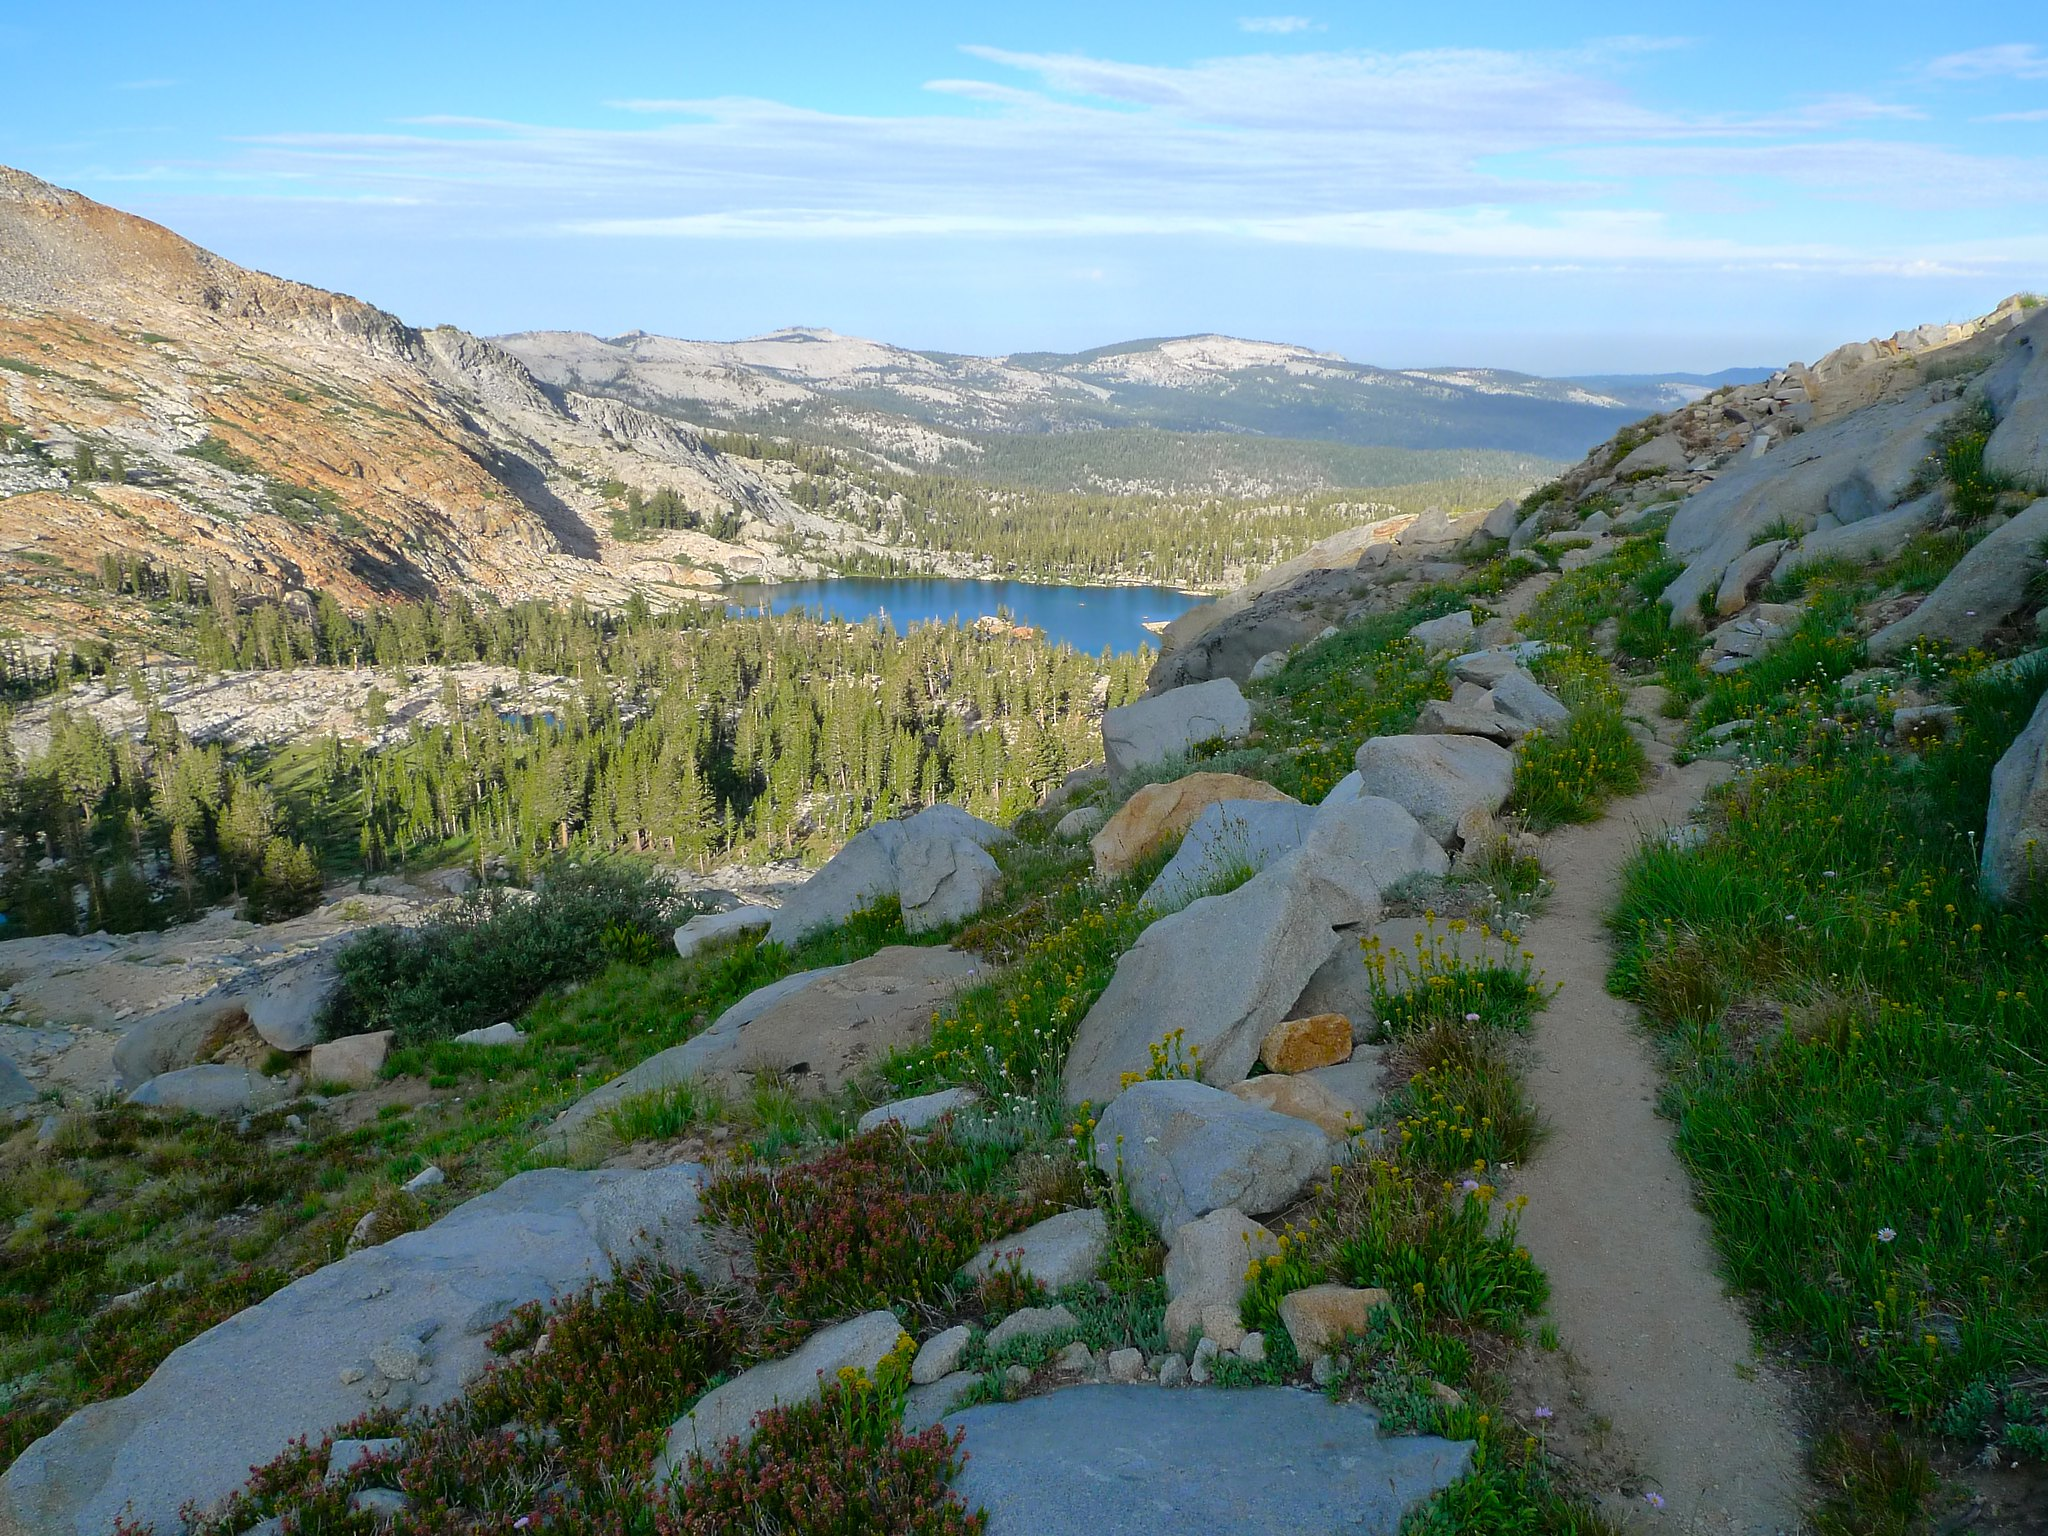 Looking west down on Lower Ottoway Lake from the trail to Red Peak Pass